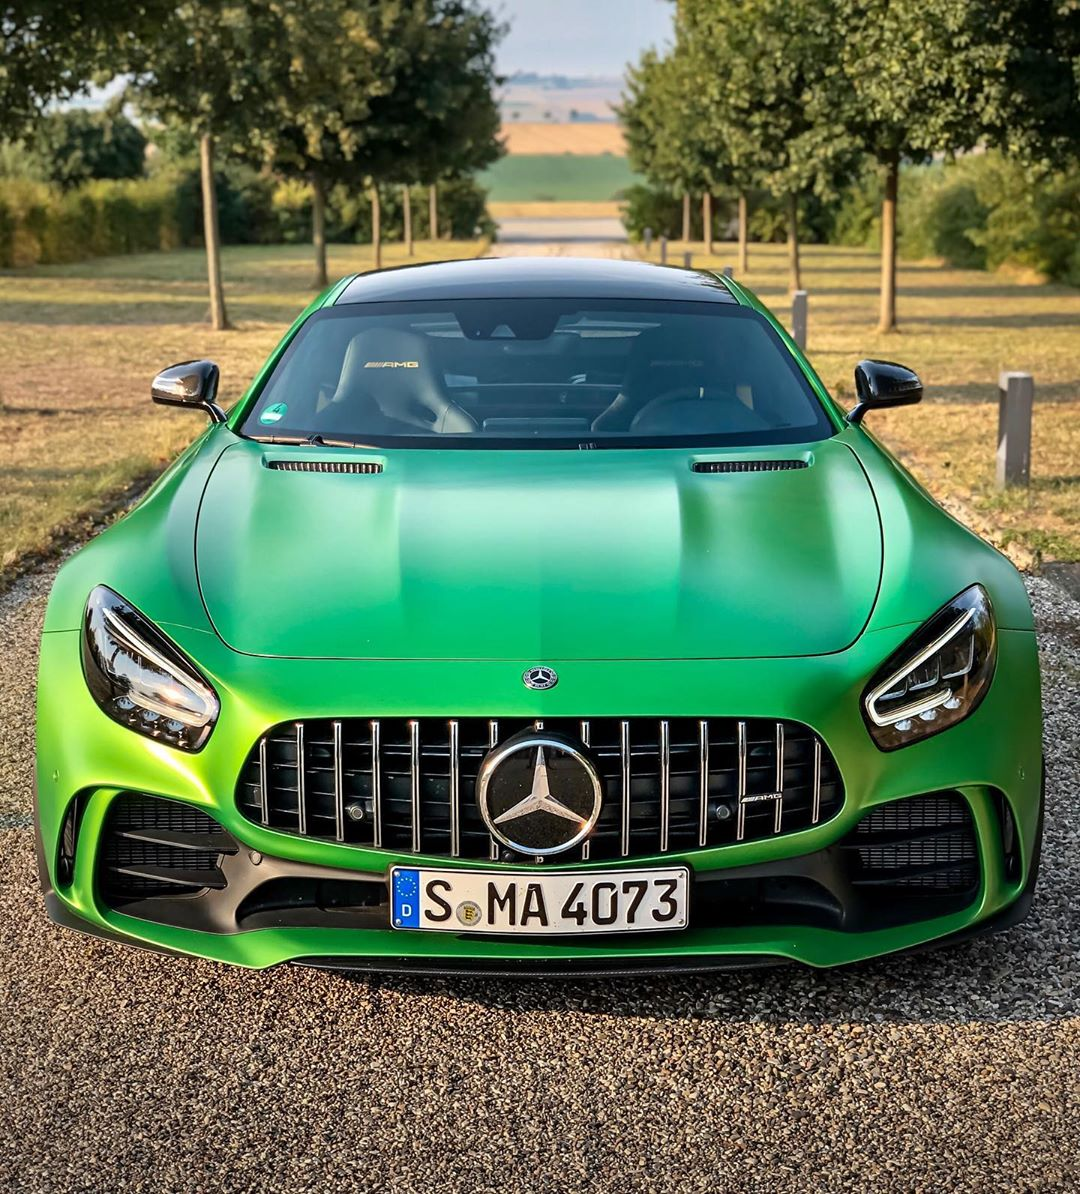 Watta machine💥🍏🏁…Some days are just better than others😇…finally our GT R journey starts with matte green paint & beautiful weather! Stunning photo-shoots & emotional videos are just around the corner🙏 @mercedesamg #mercedesamg #mbsocialcar #amg #amggtr #gtr #amggtrpro #amggt #greenhellmagno #greenhell #automanntv